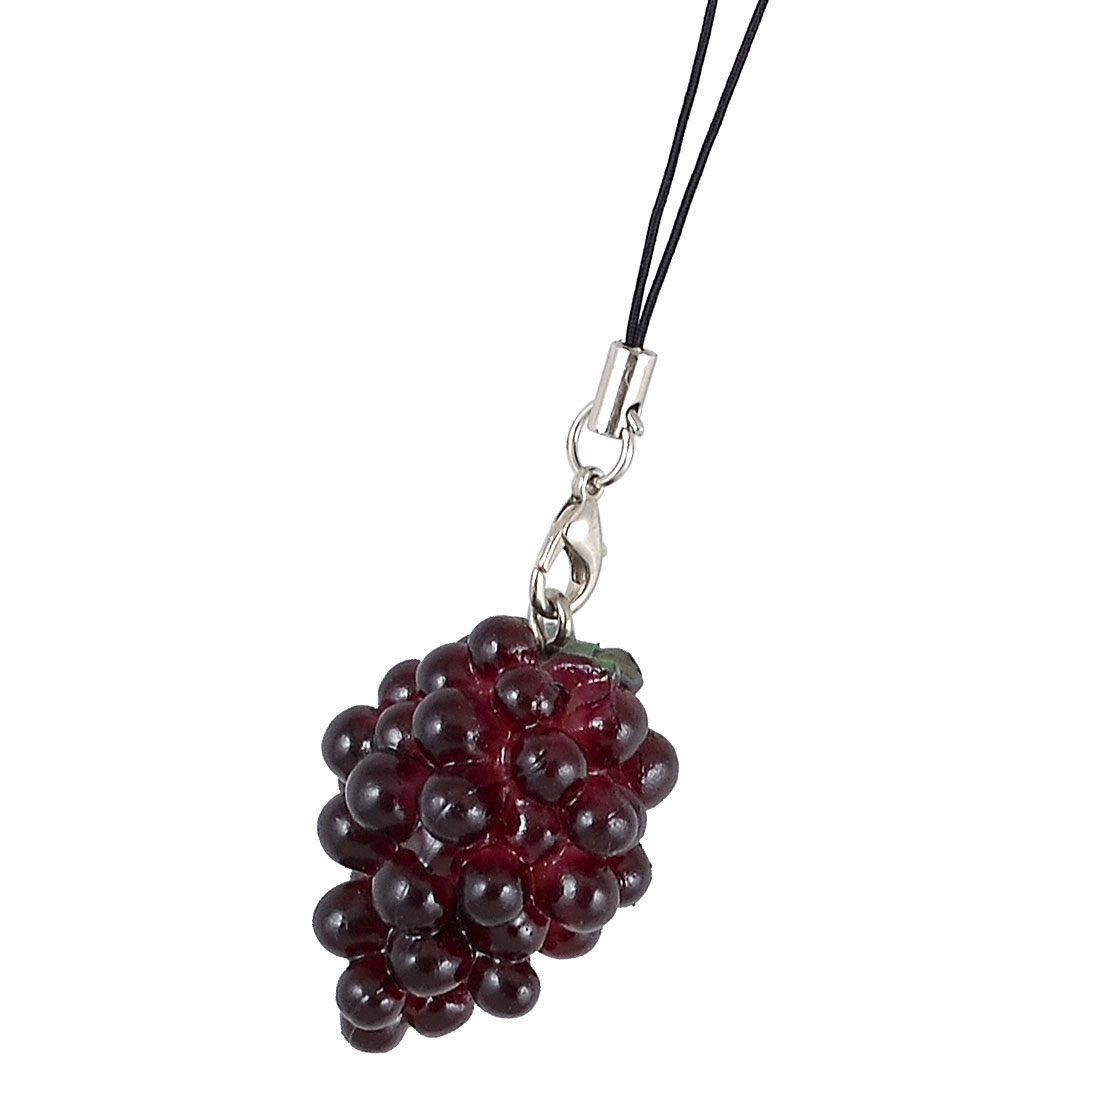 Dark Purple Plastic Grapes Pendant Strap String for MP3 MP4 Cell Phone